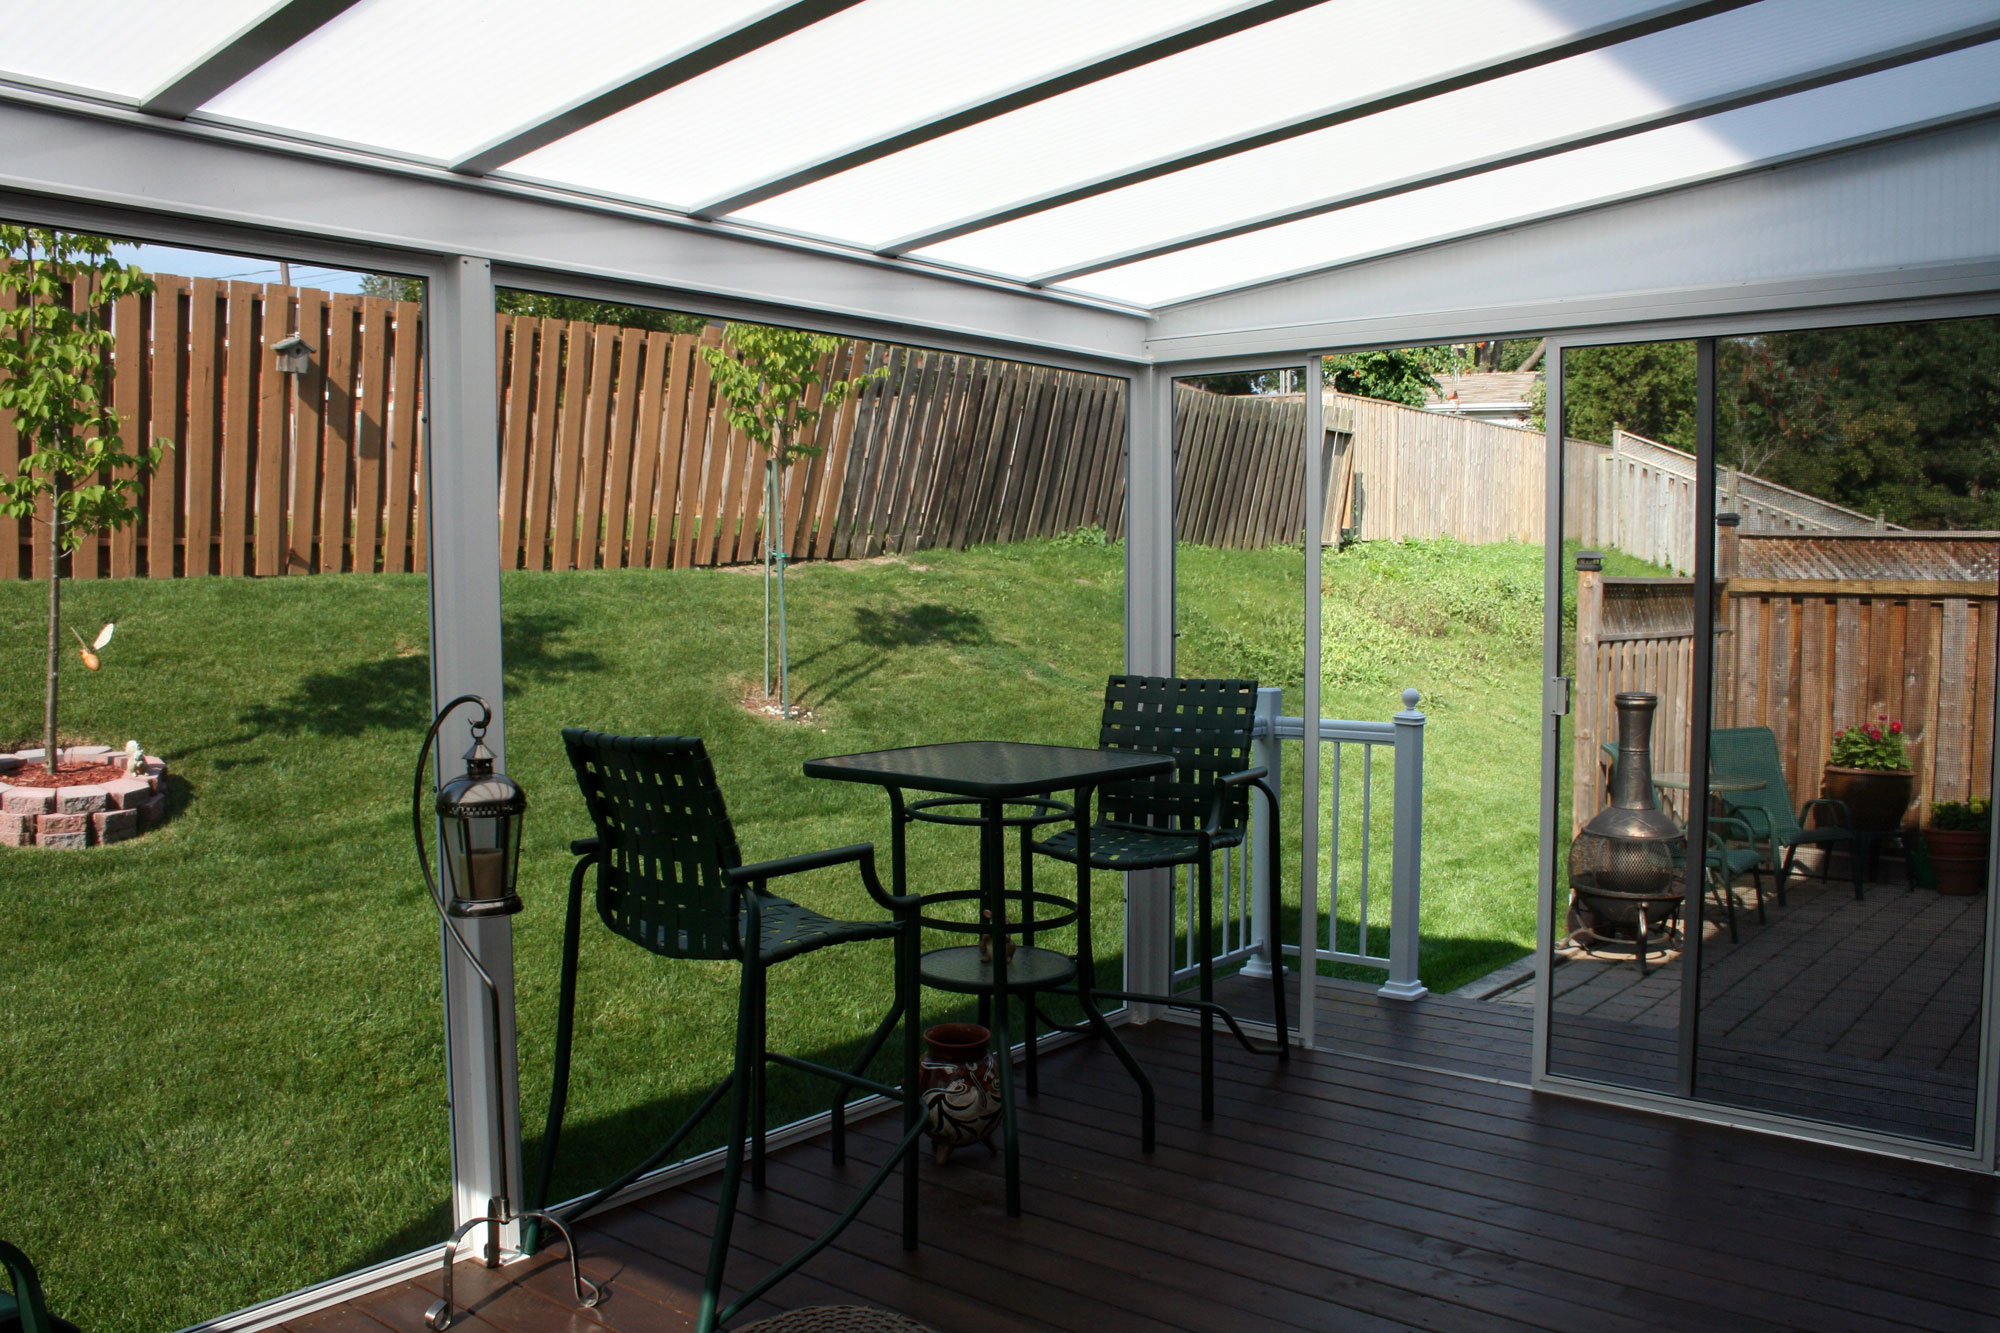 Portfolio Archive Natural Light Patio Covers Natural Light